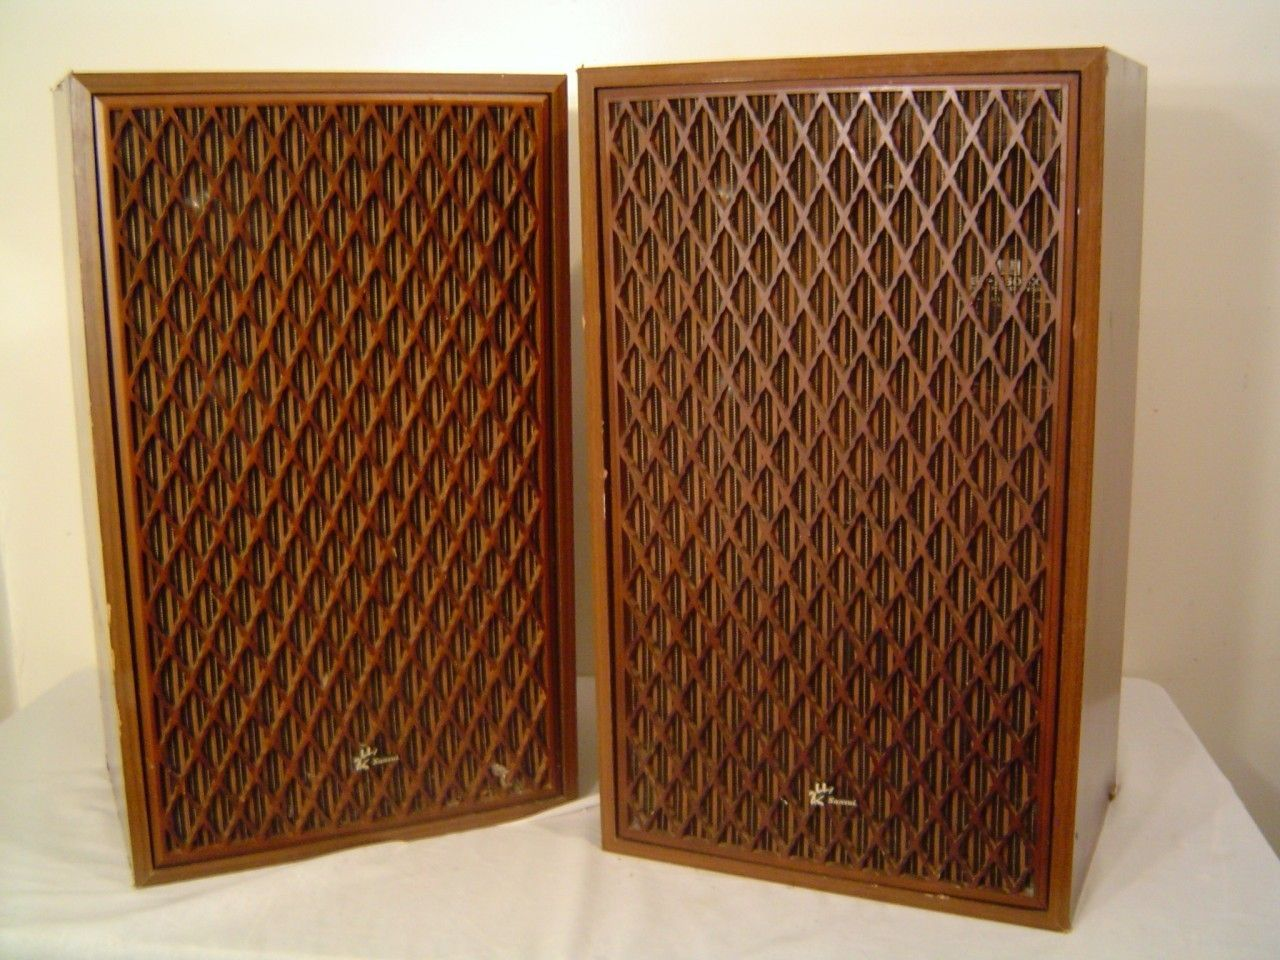 Vintage Sansui Sp 2500x 3 Way Floor Speakers 25x15x11 100